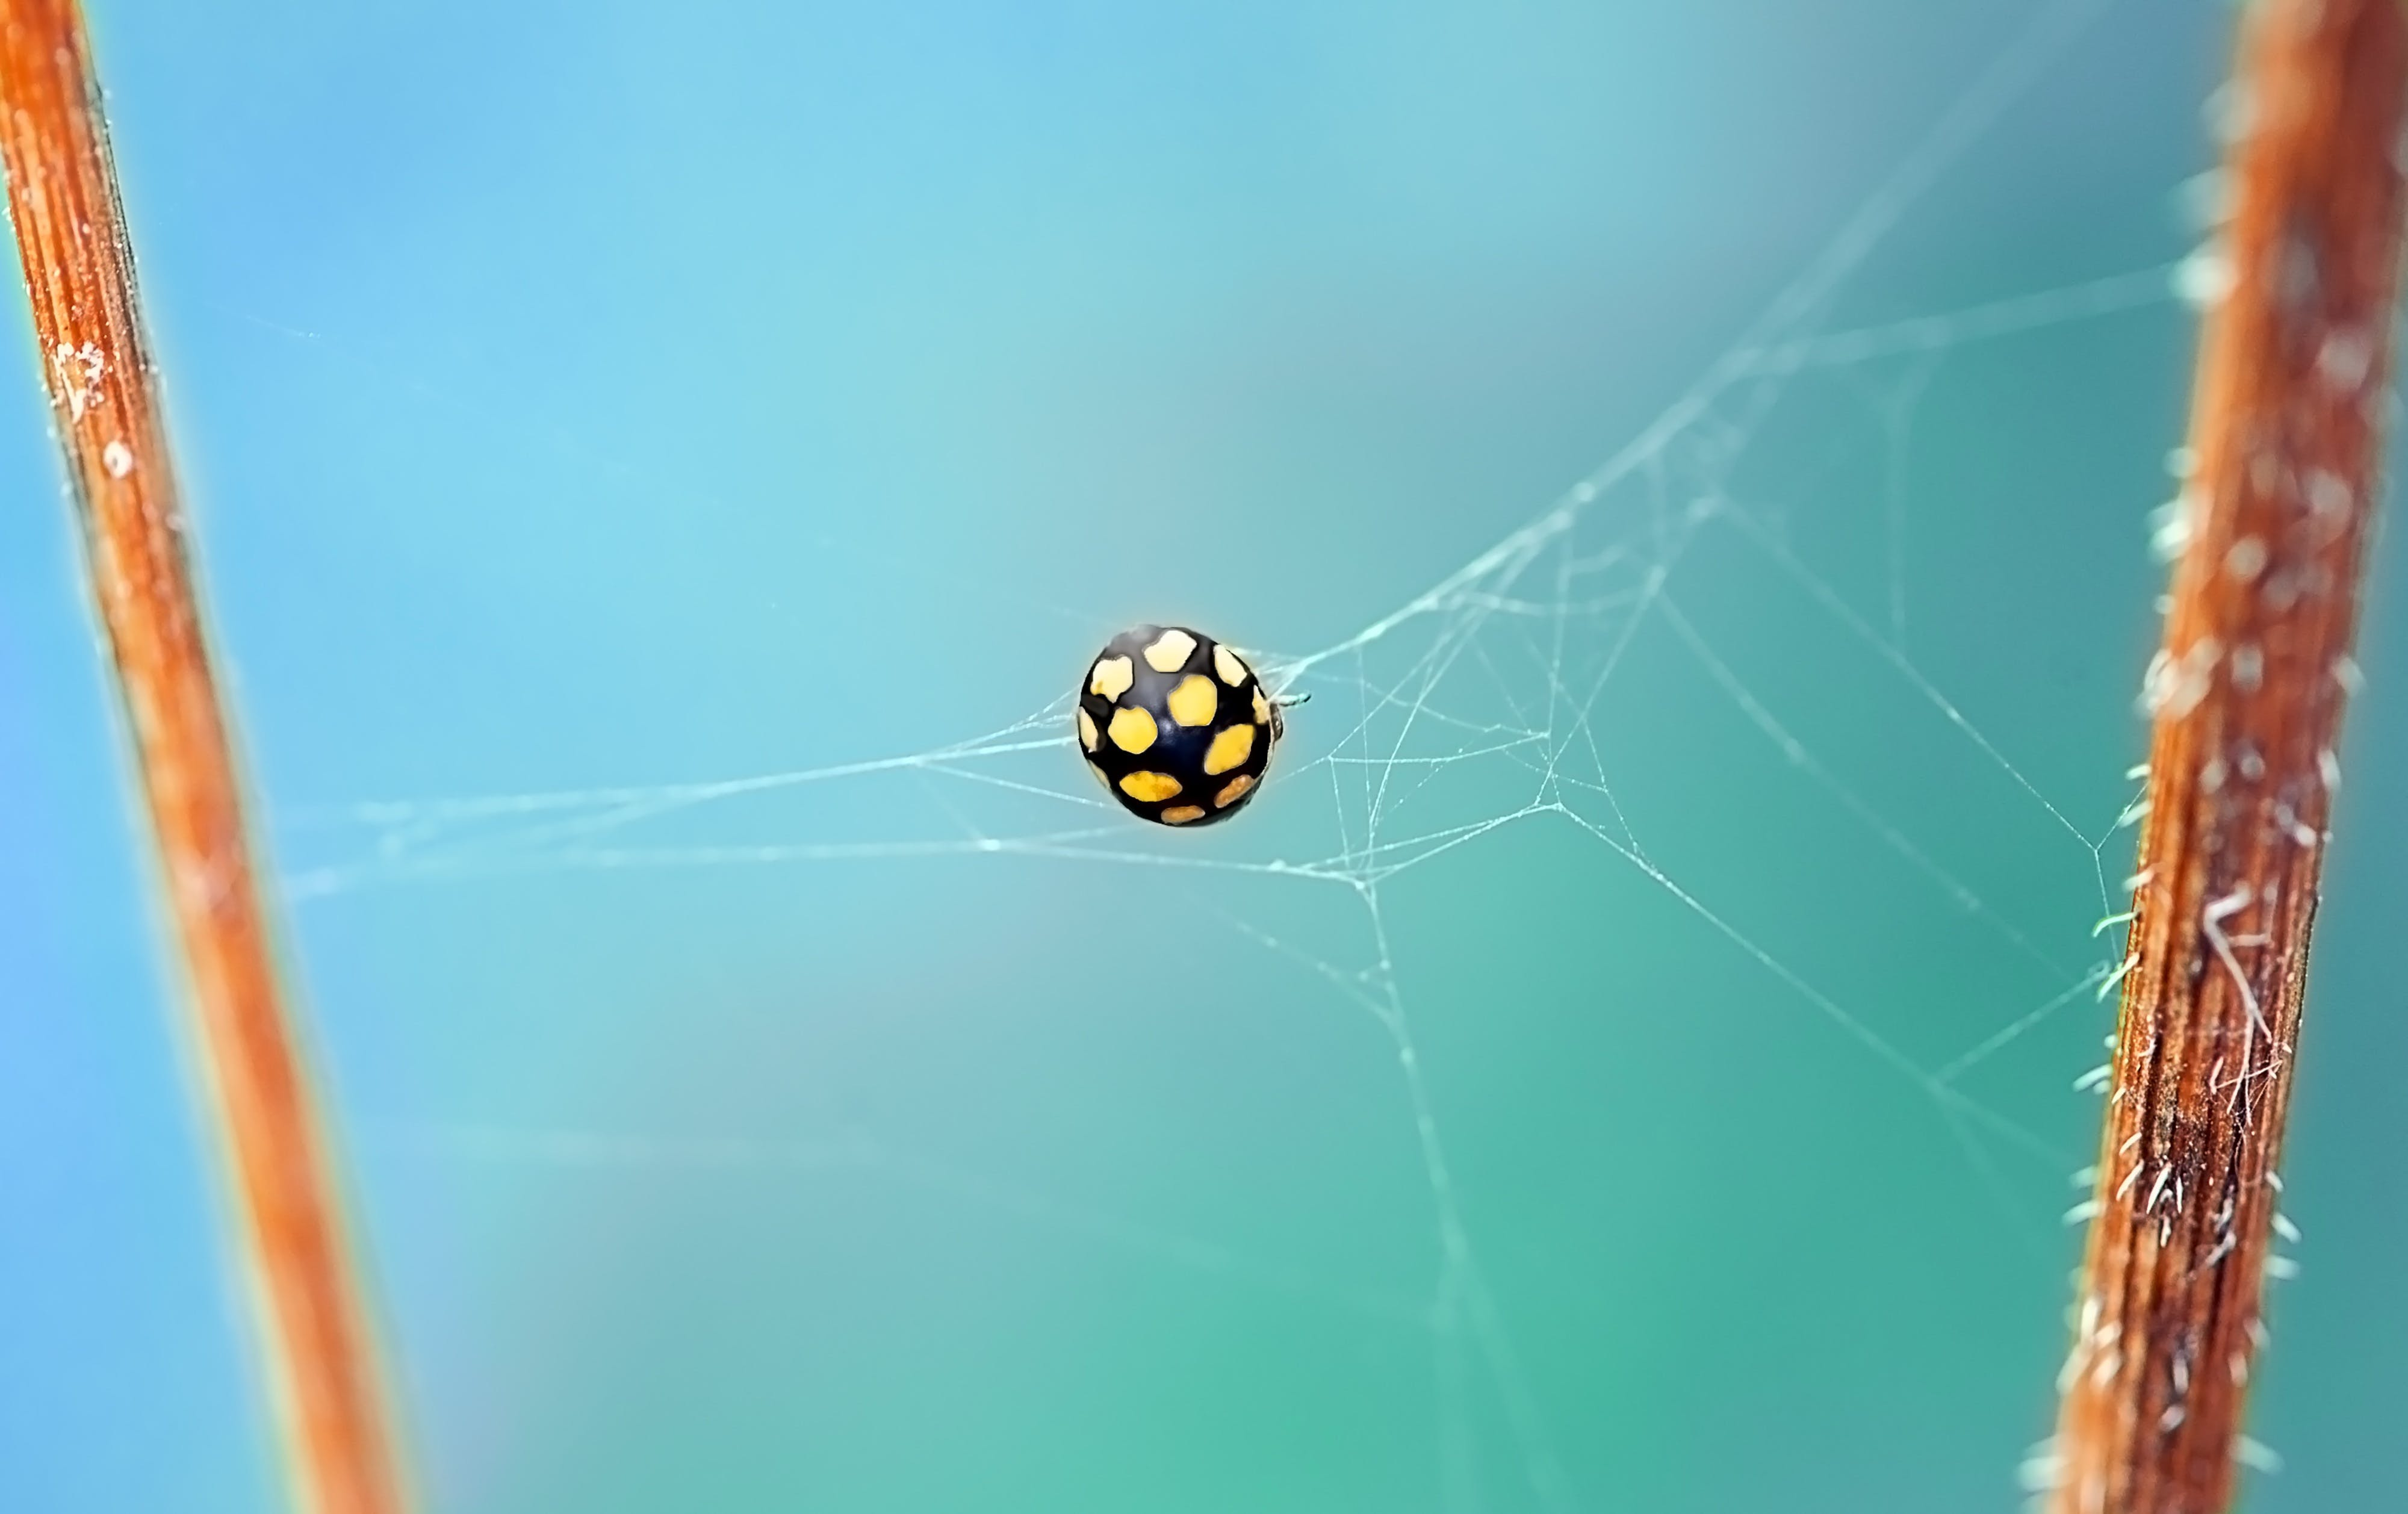 Shallow Focus Photography of Black and Yellow Spider on Web